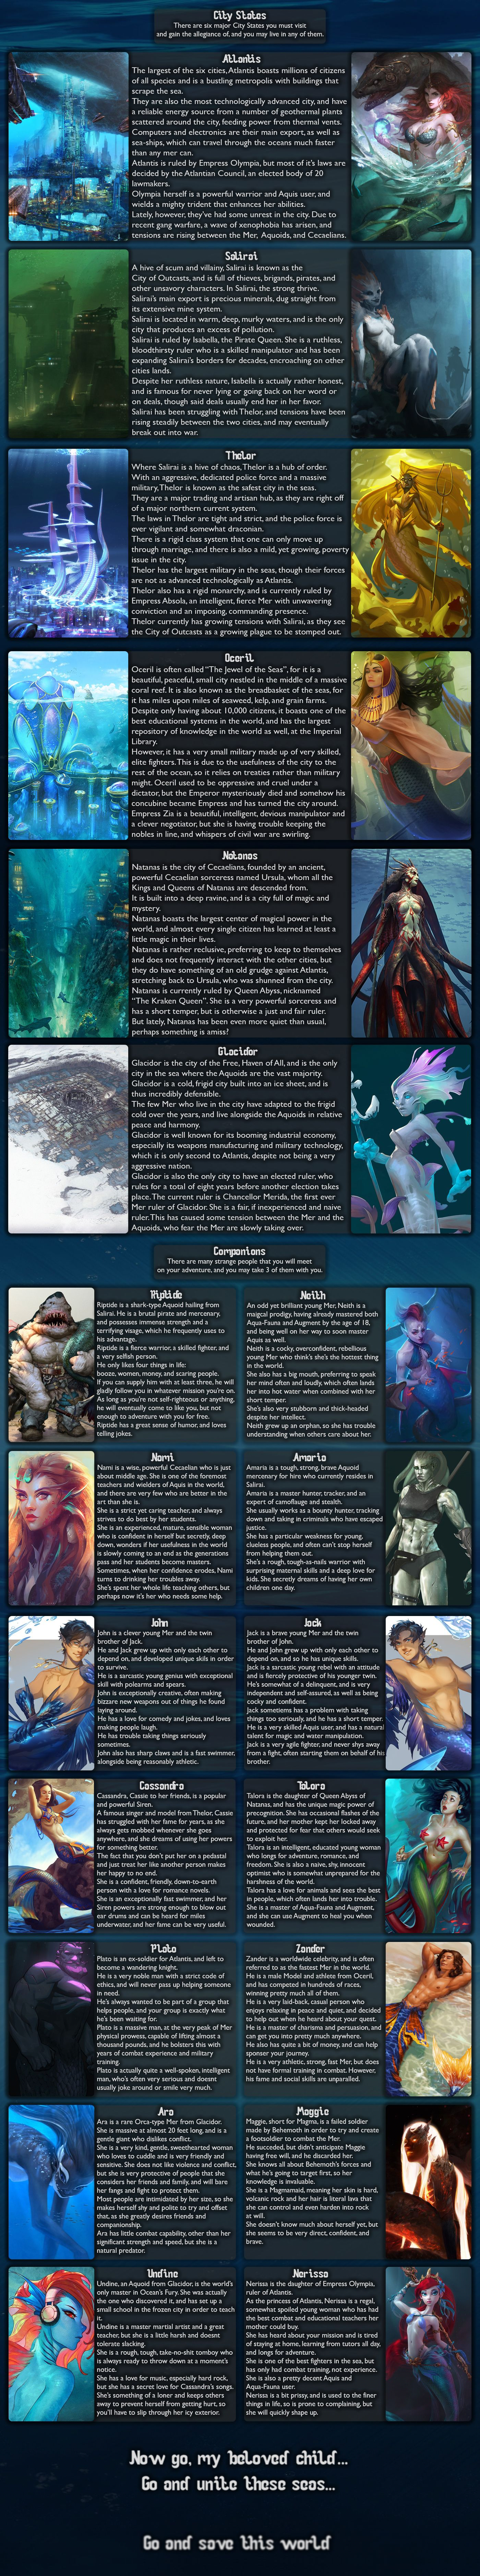 Beneath The Waves In 2020 Cyoa Create Your Own Adventure Cyoa Games